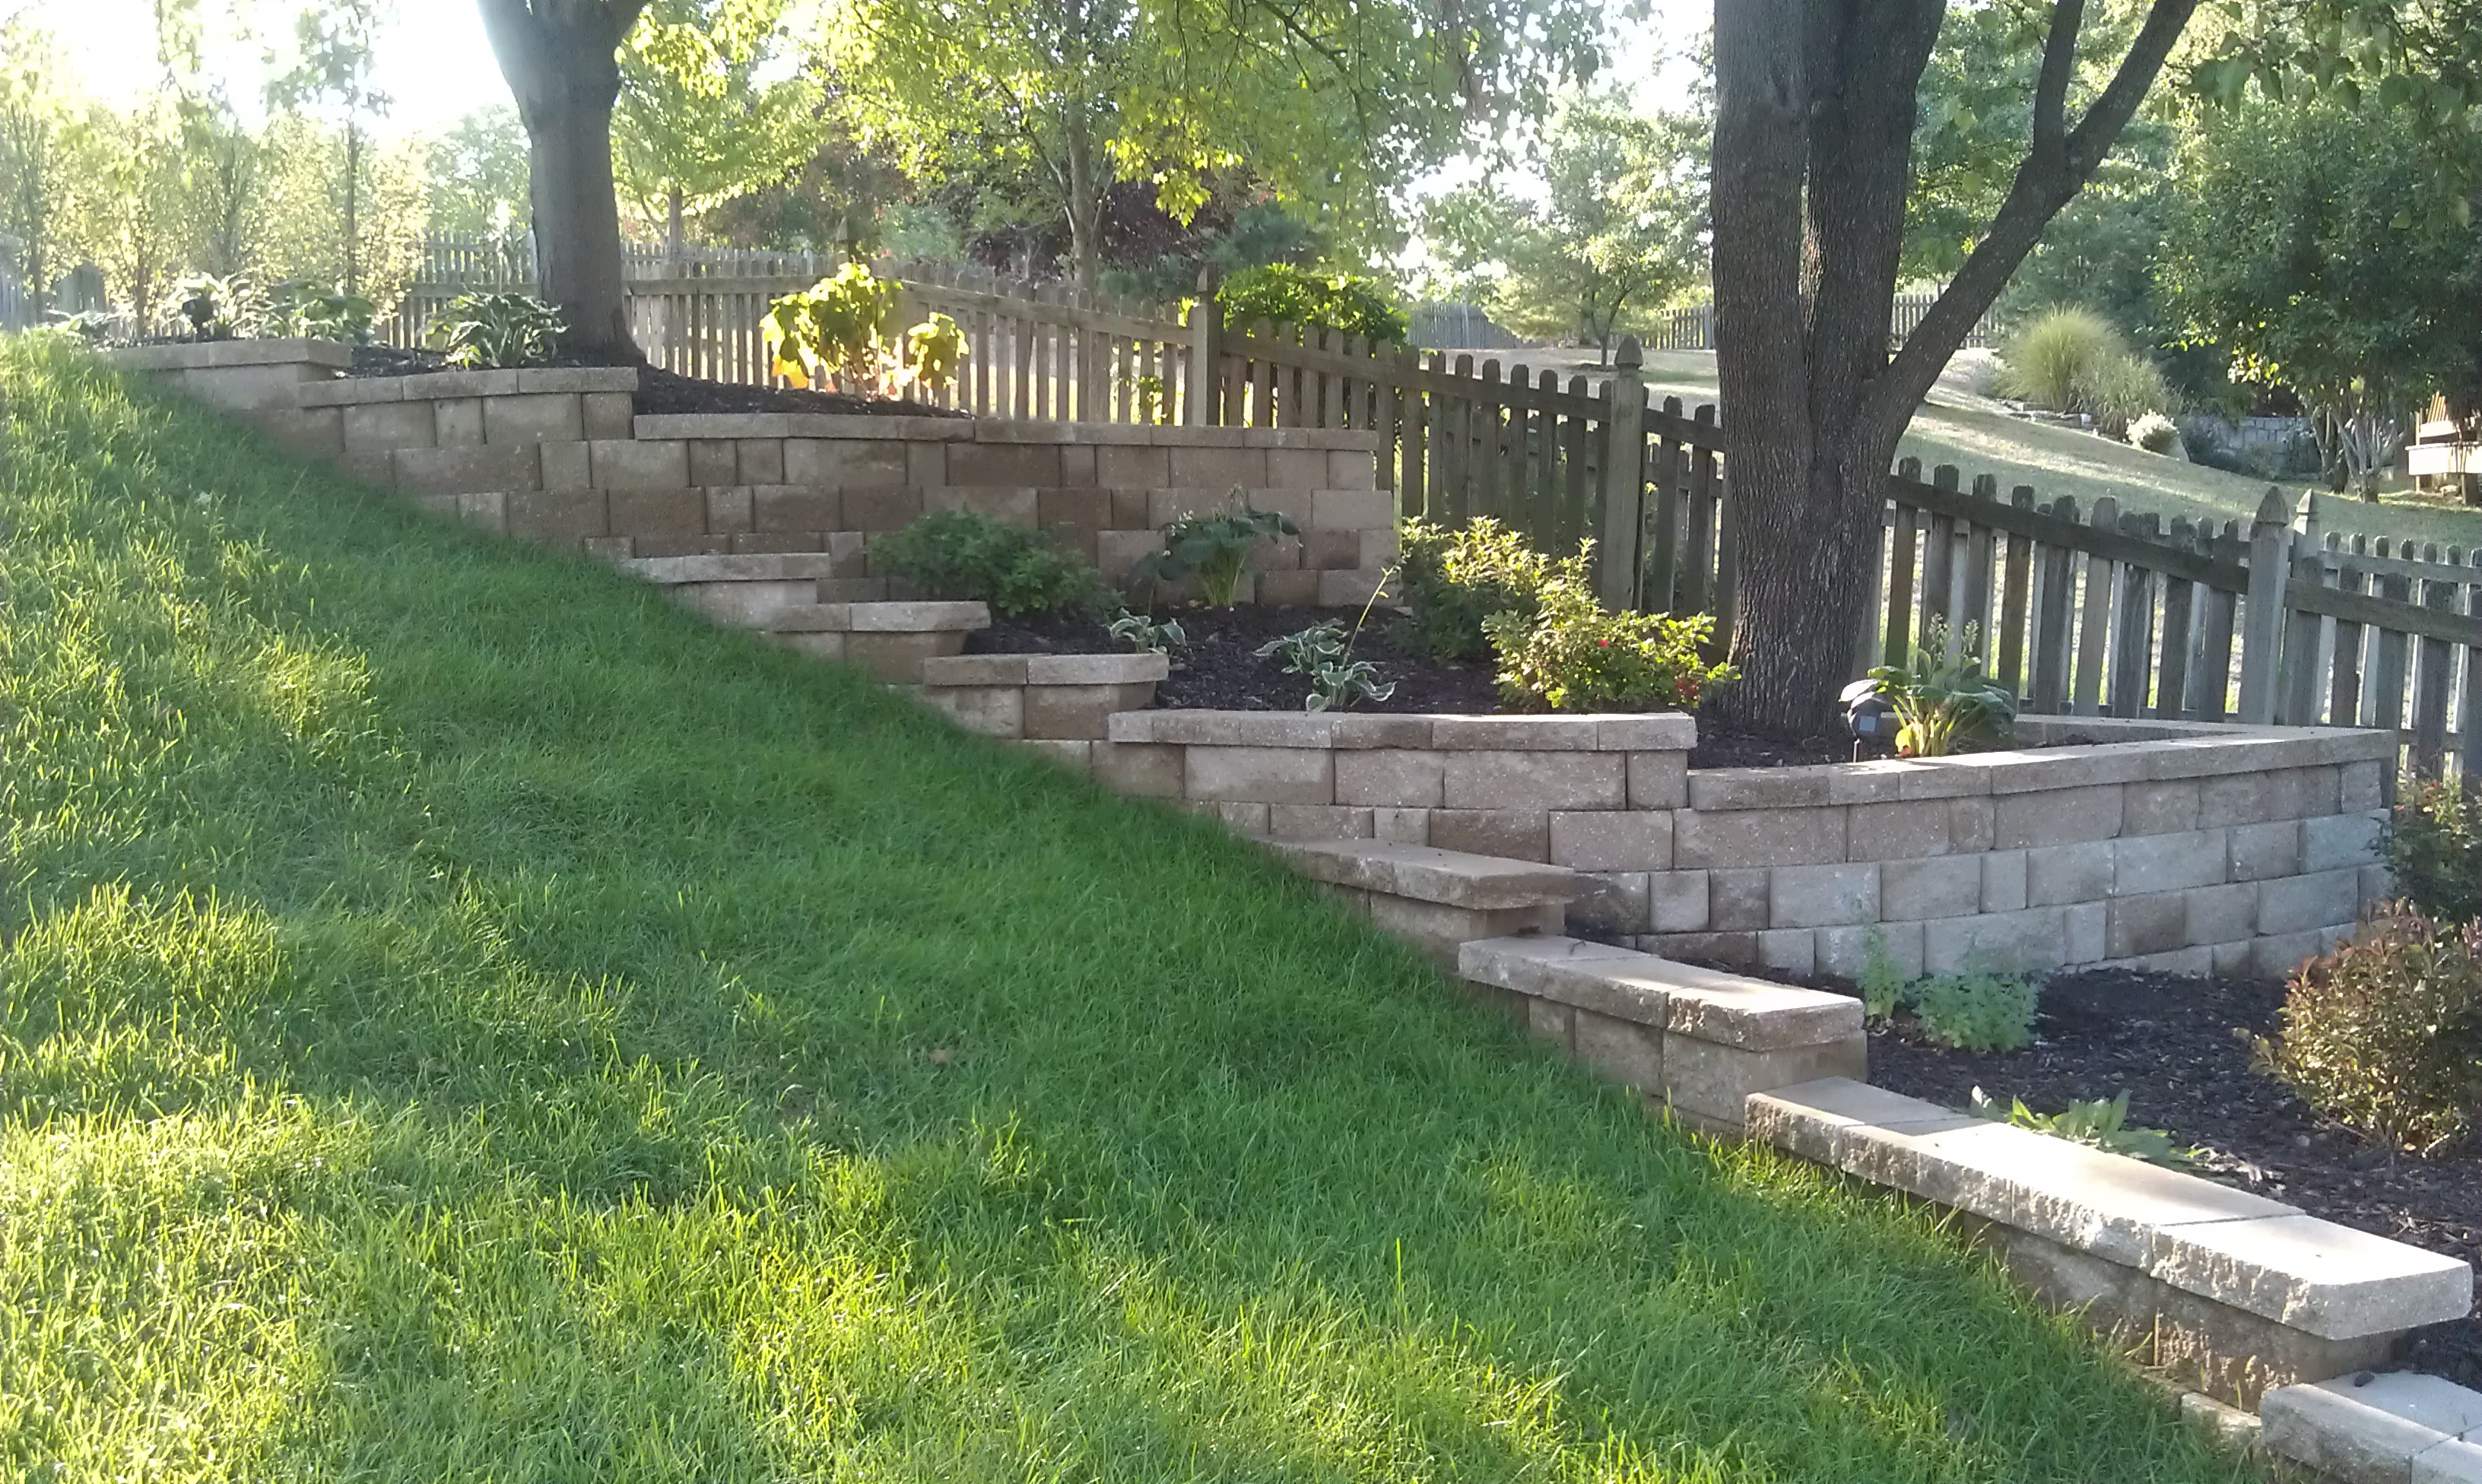 #9 Retaining wall along fence